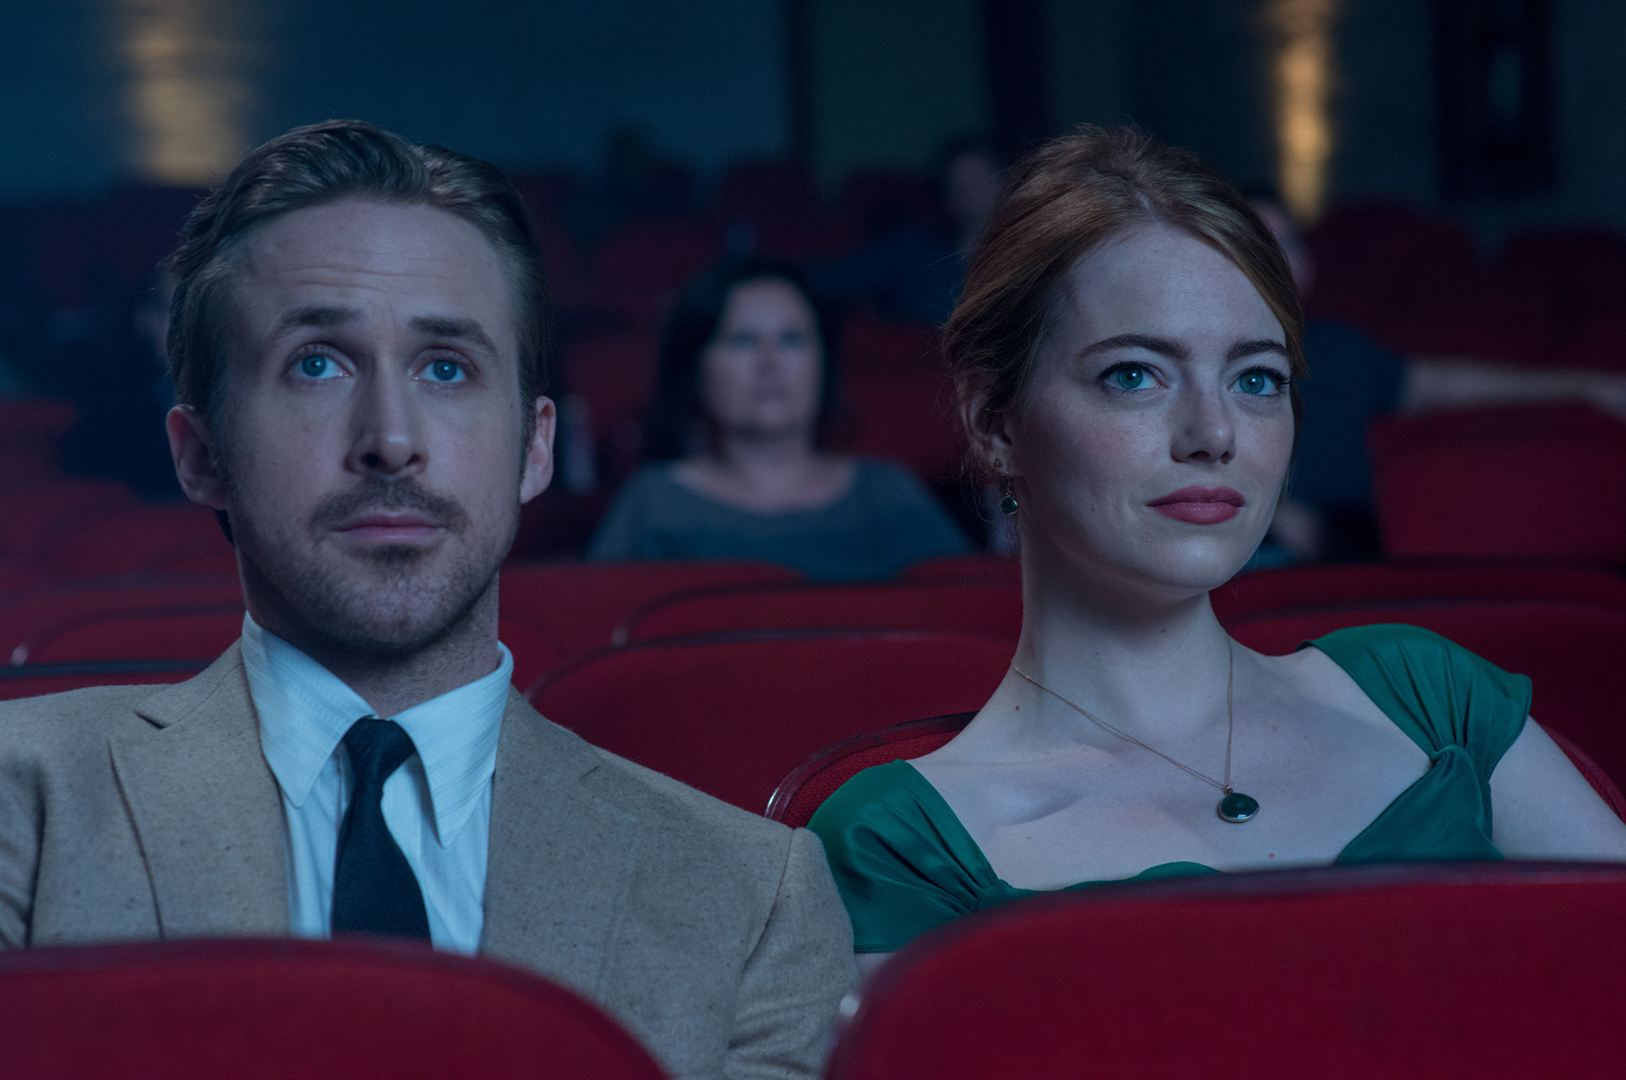 La La Land Los Angeles - Teatro Rialto Cinema